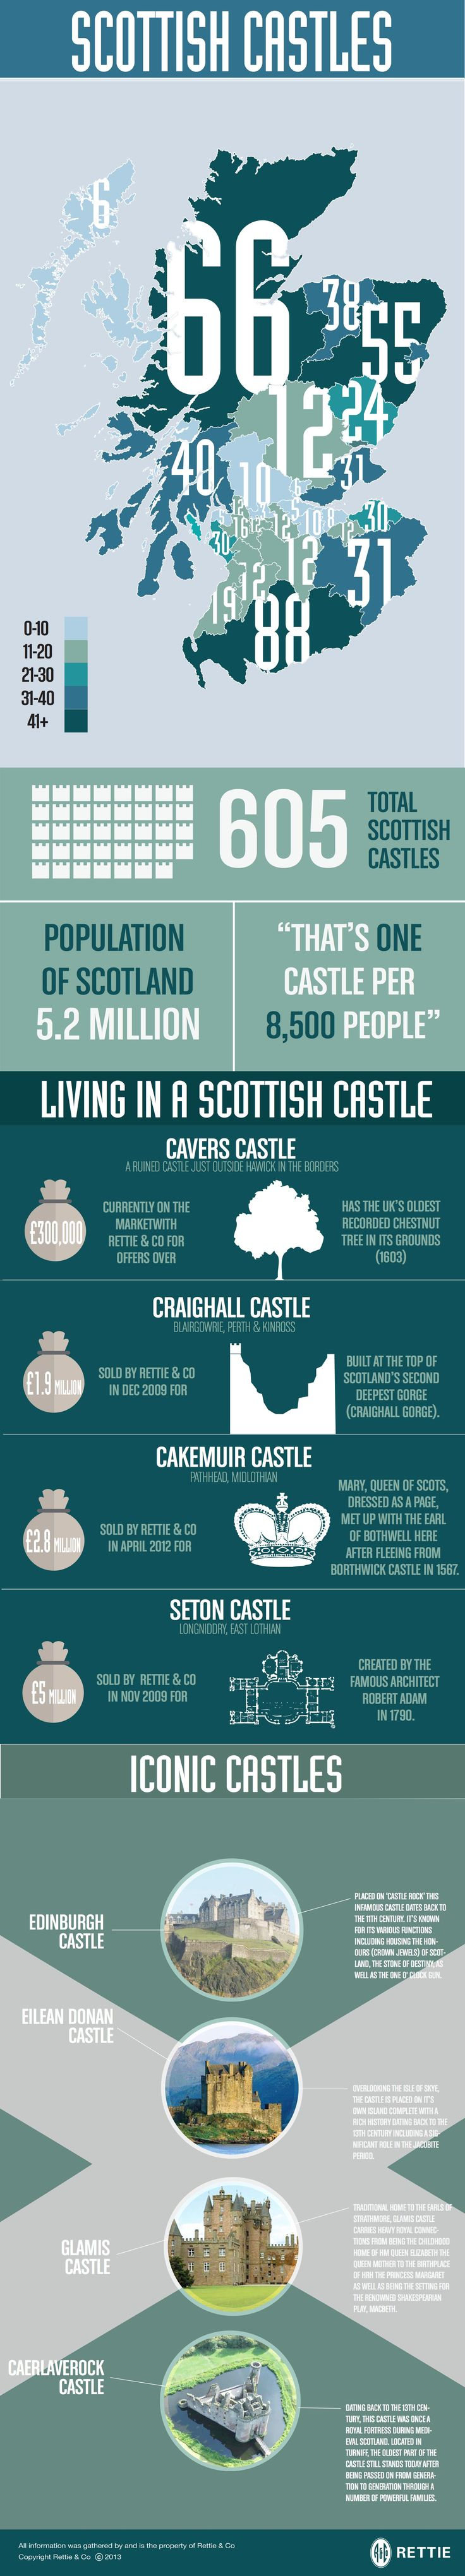 Rettie-Castle-Infographic